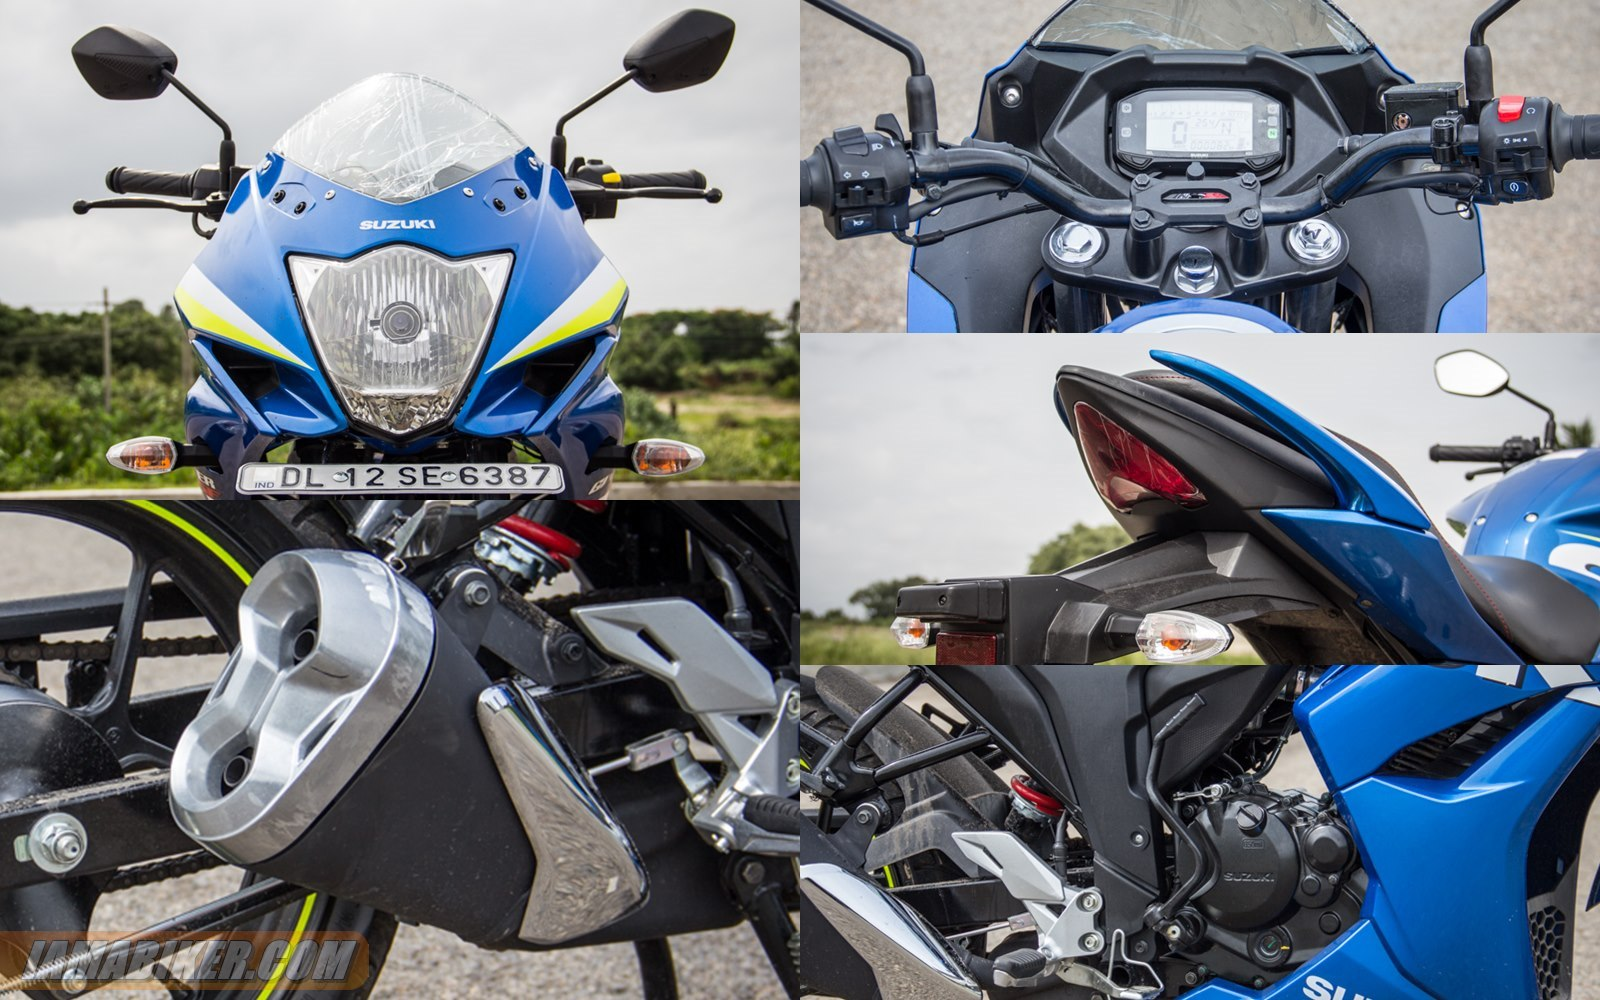 Suzuki Gixxer SF review - key features and accessories